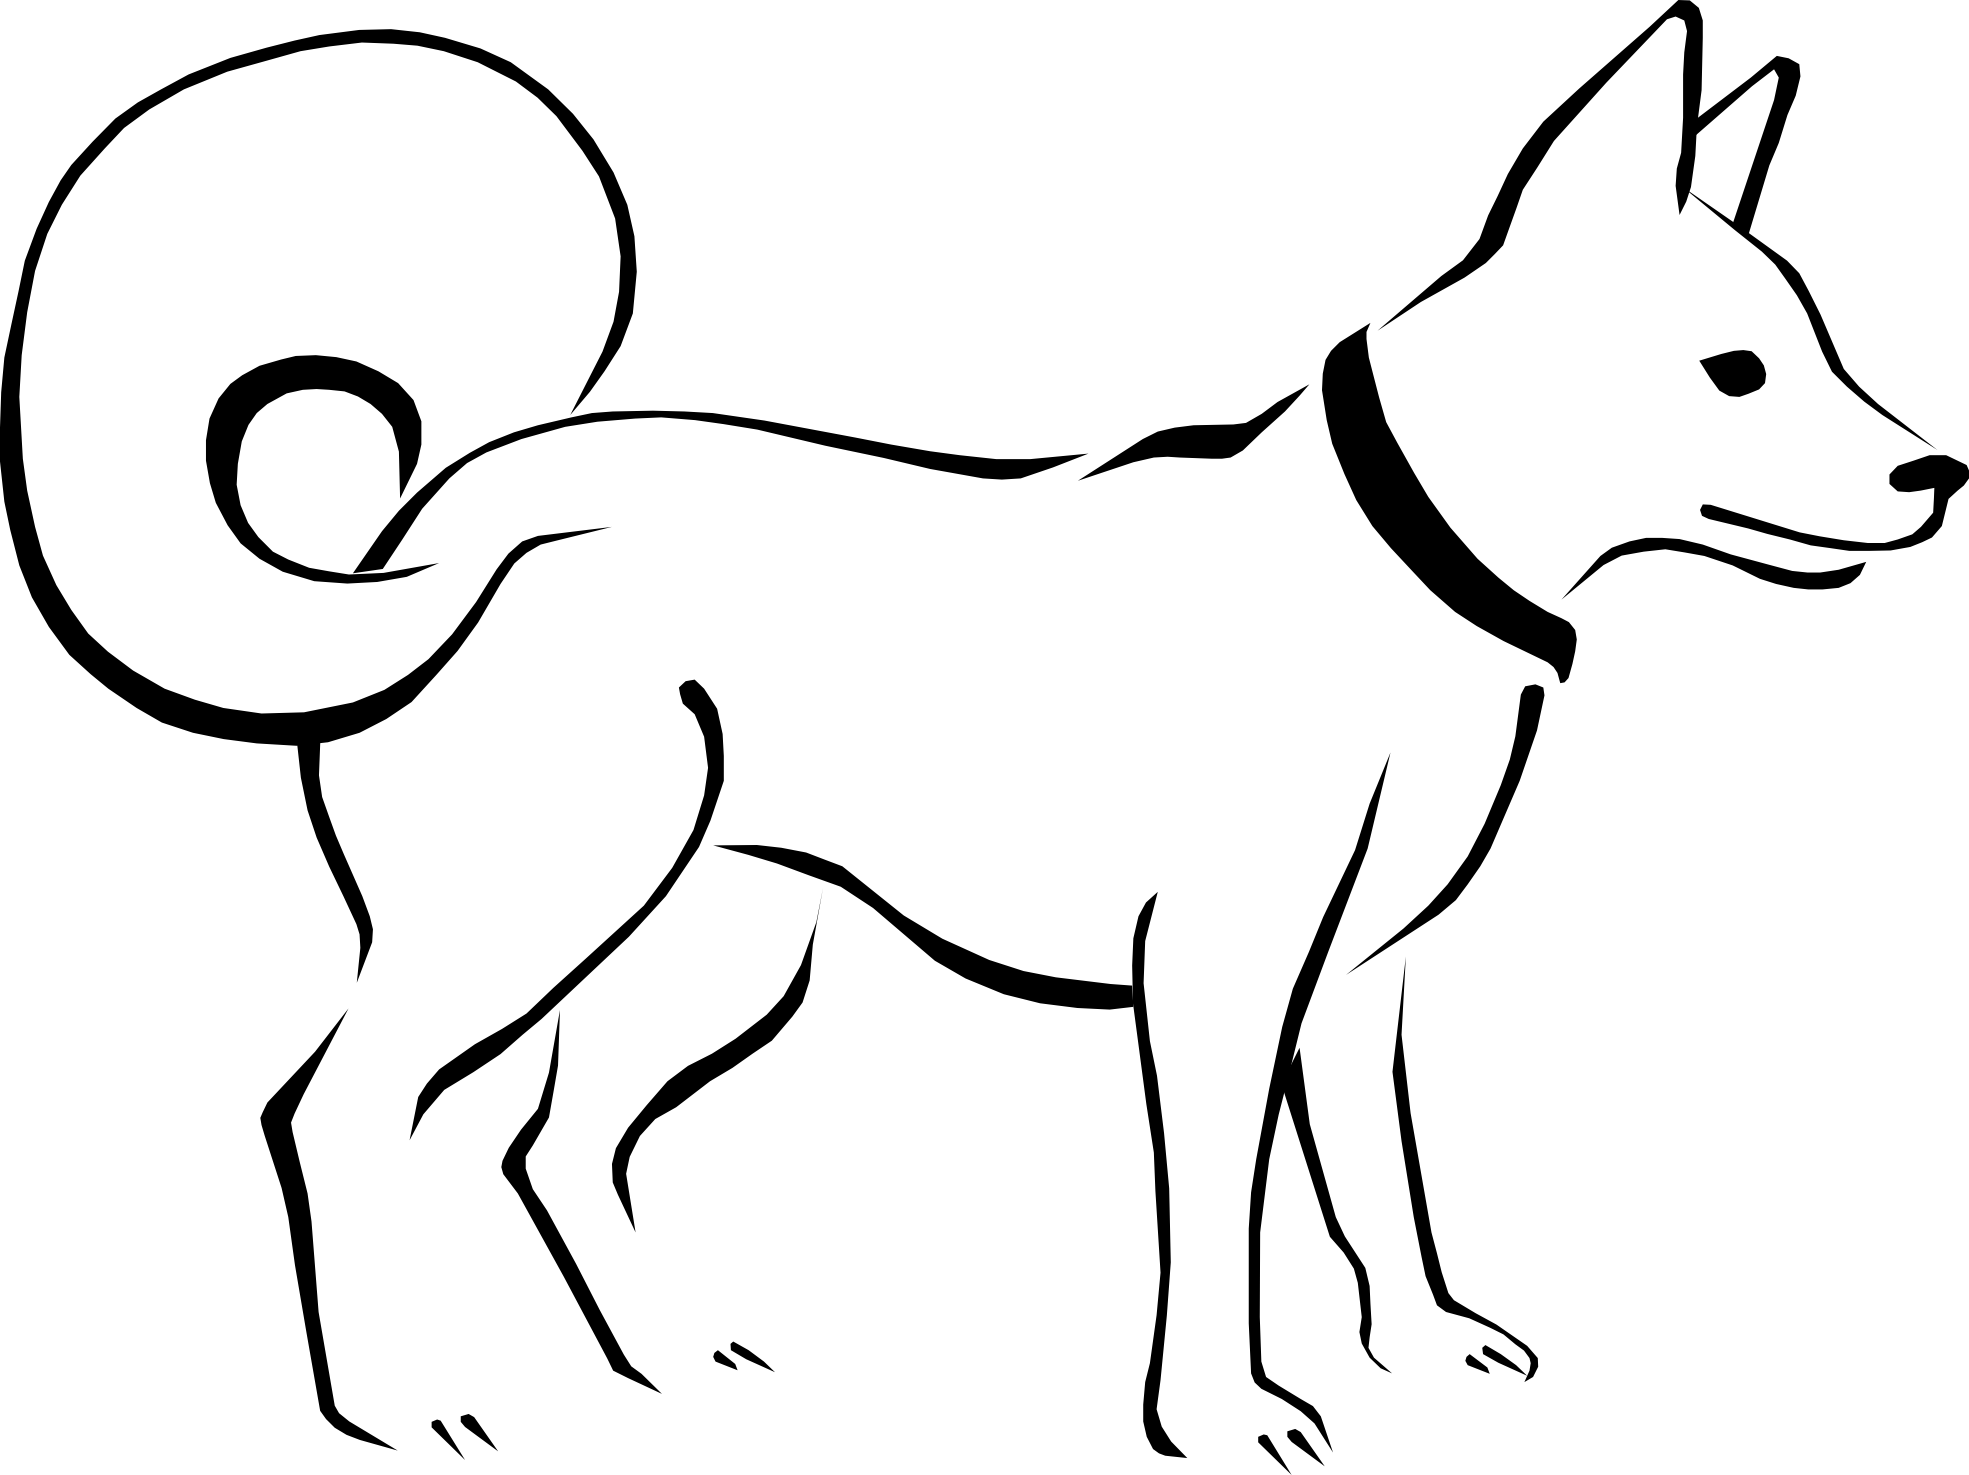 Cute animal outline png. Black and white pets